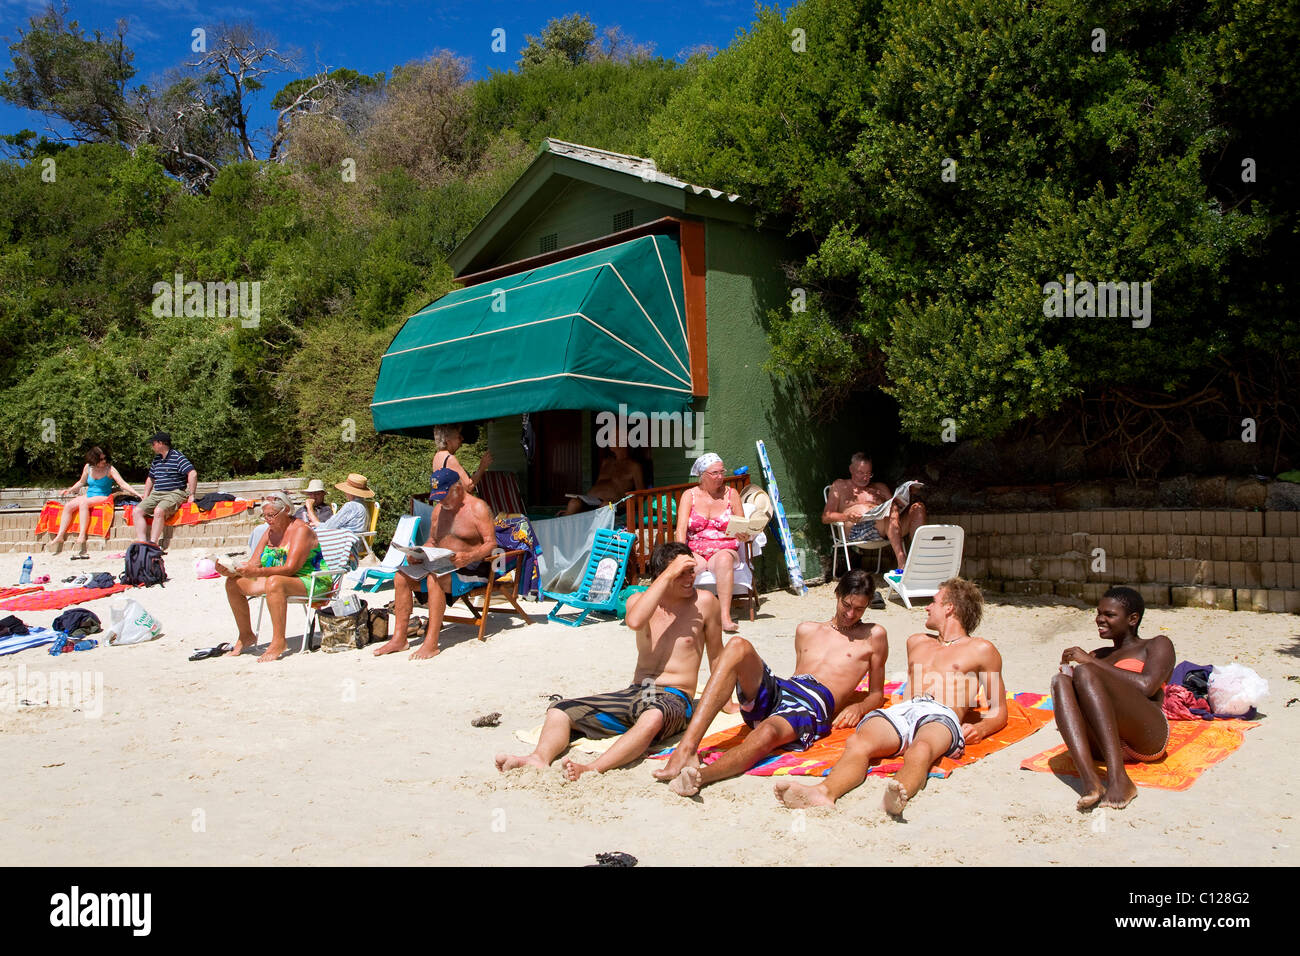 Multiculturalism, sunbathers on Boulders Beach, Western Cape near Cape Town, South Africa, Africa - Stock Image